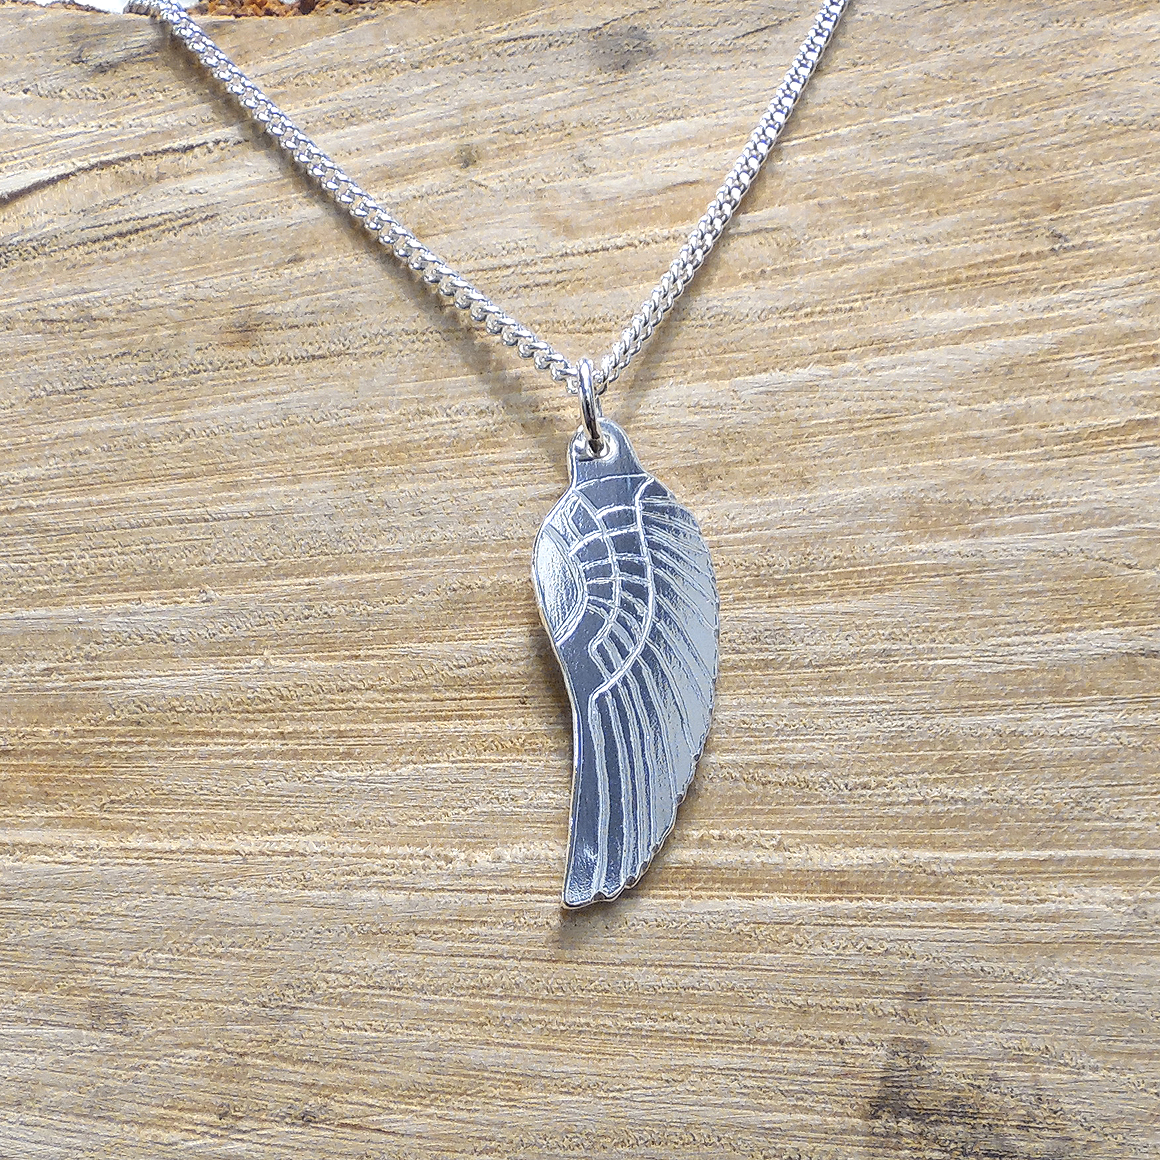 pendant it has wings your ring ideal angel is blank of text wing boho in attach fitting a with shop to doggy for robust and stainless adding the reverse steel addition split hounds